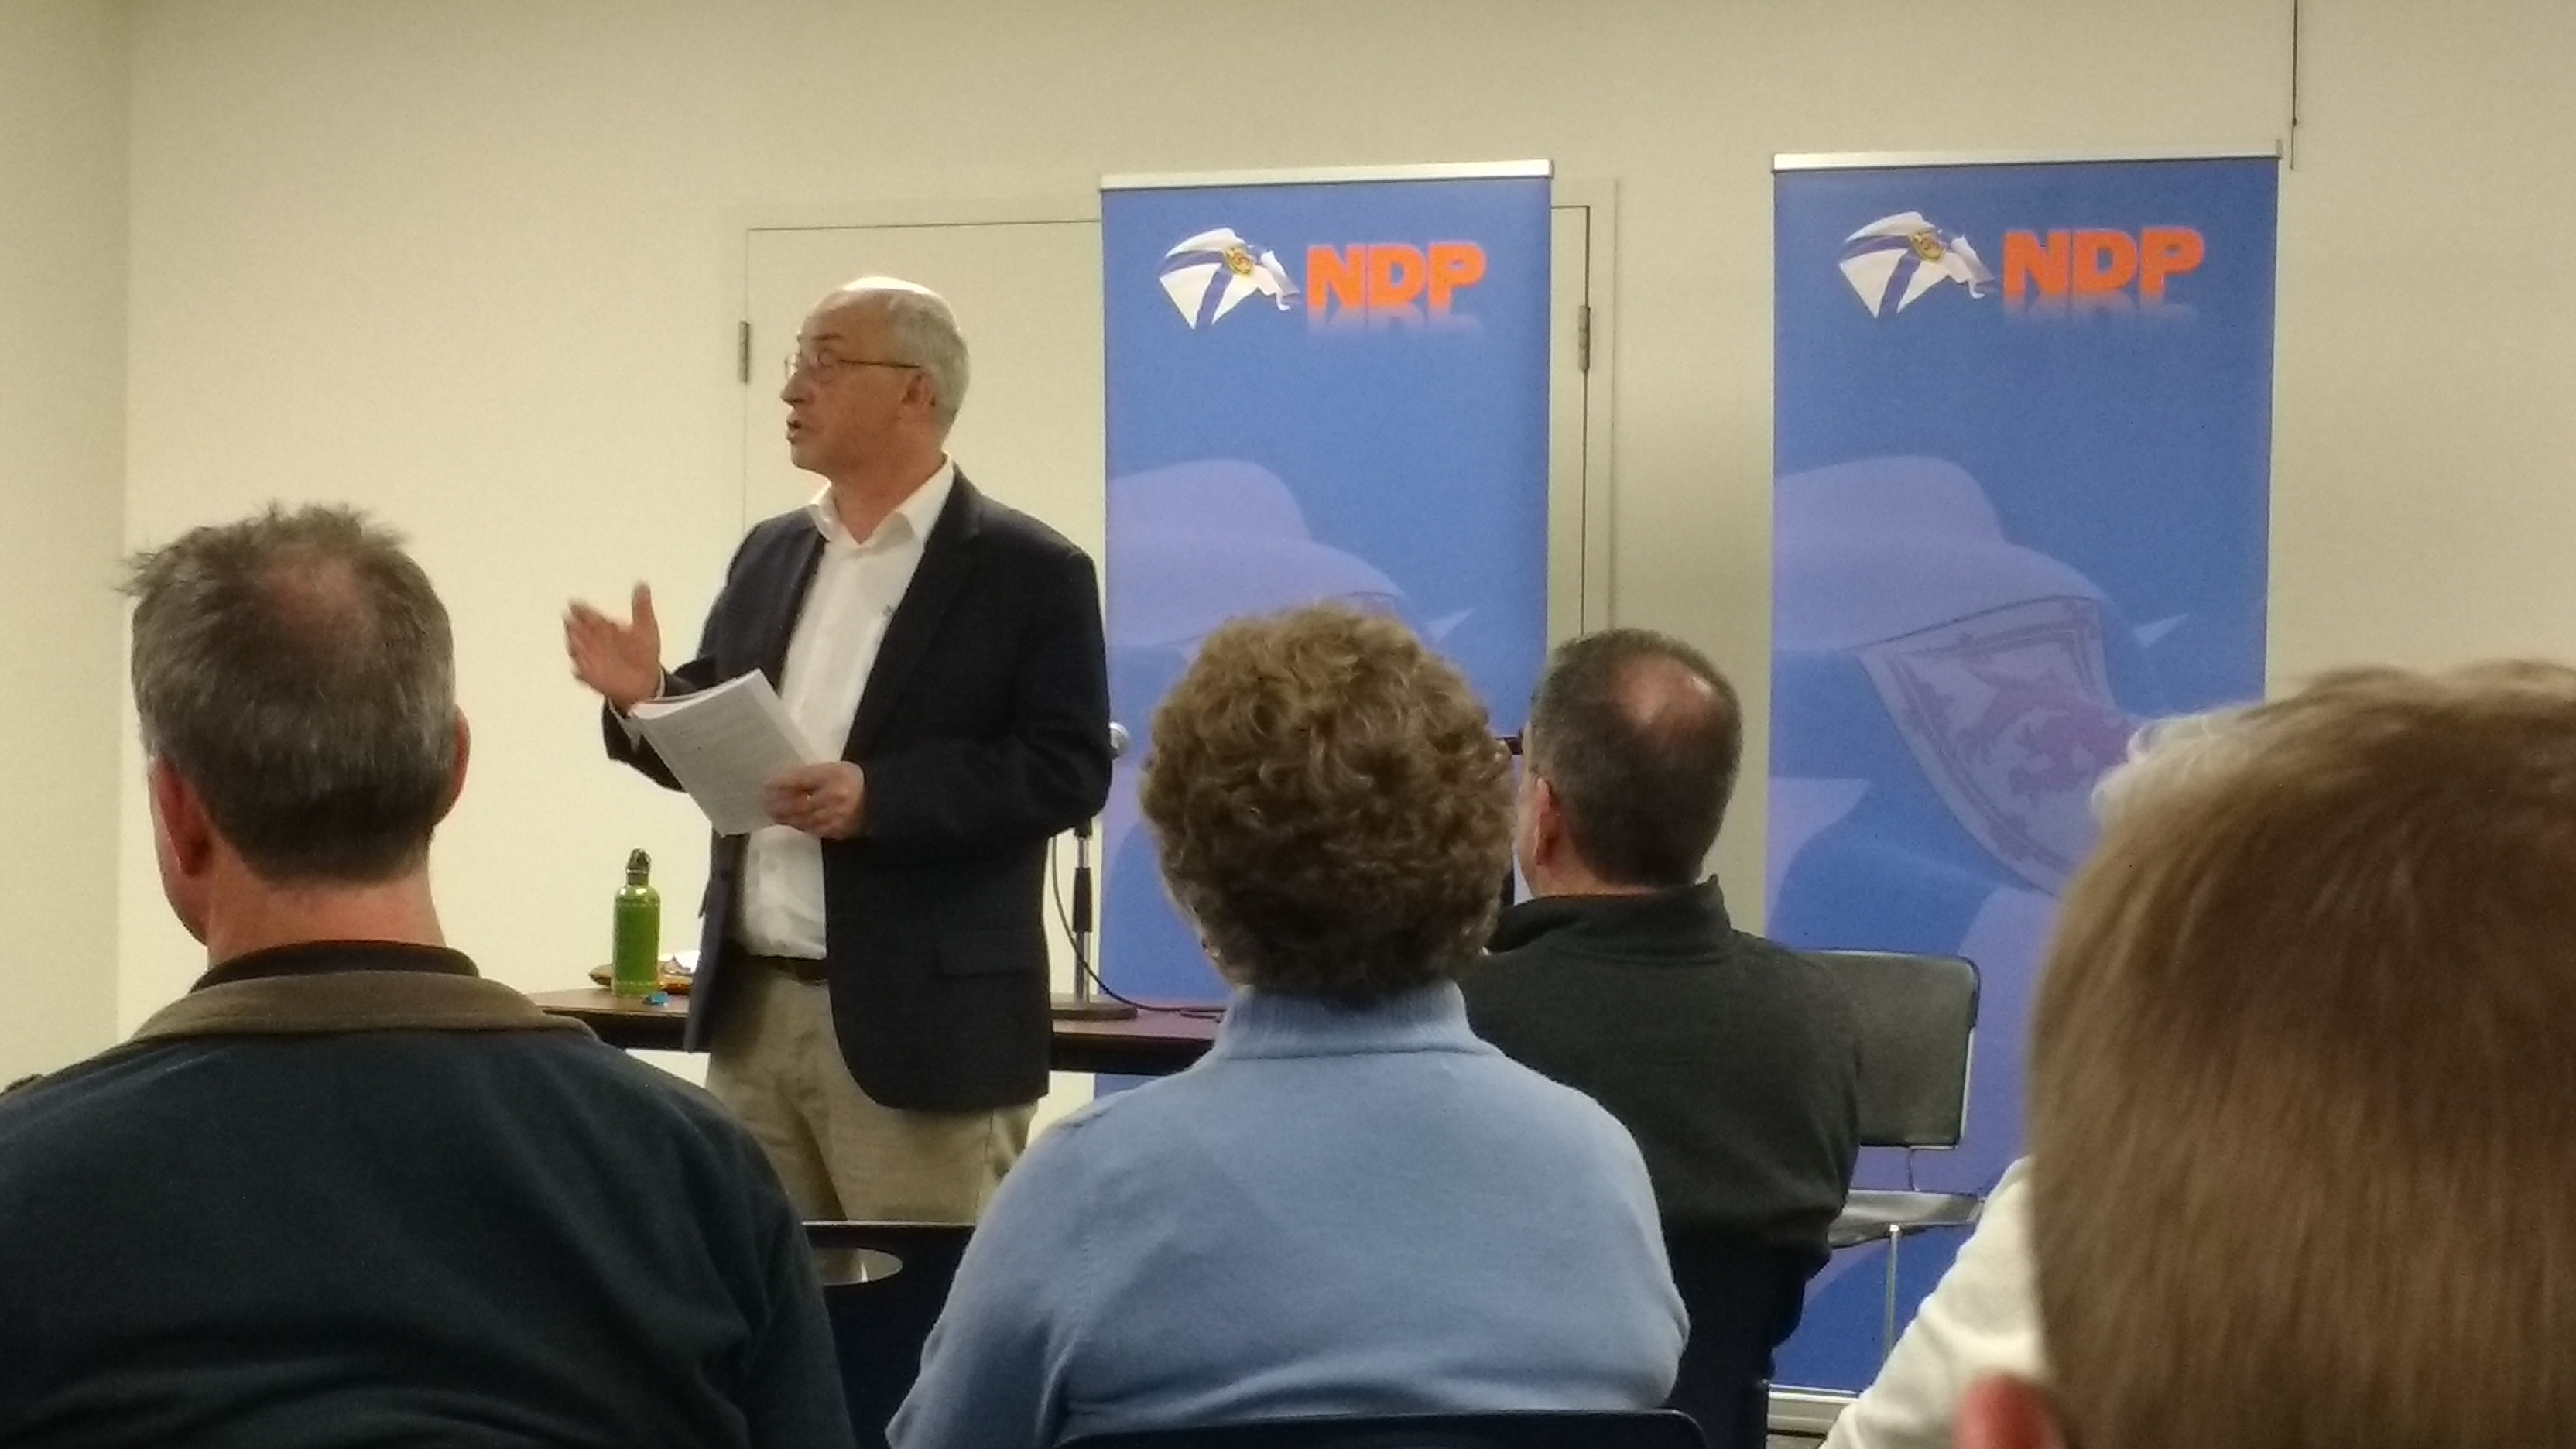 Gary Burrill, leader of the NSNDP, speaks and reads from the new policy book at the launch.